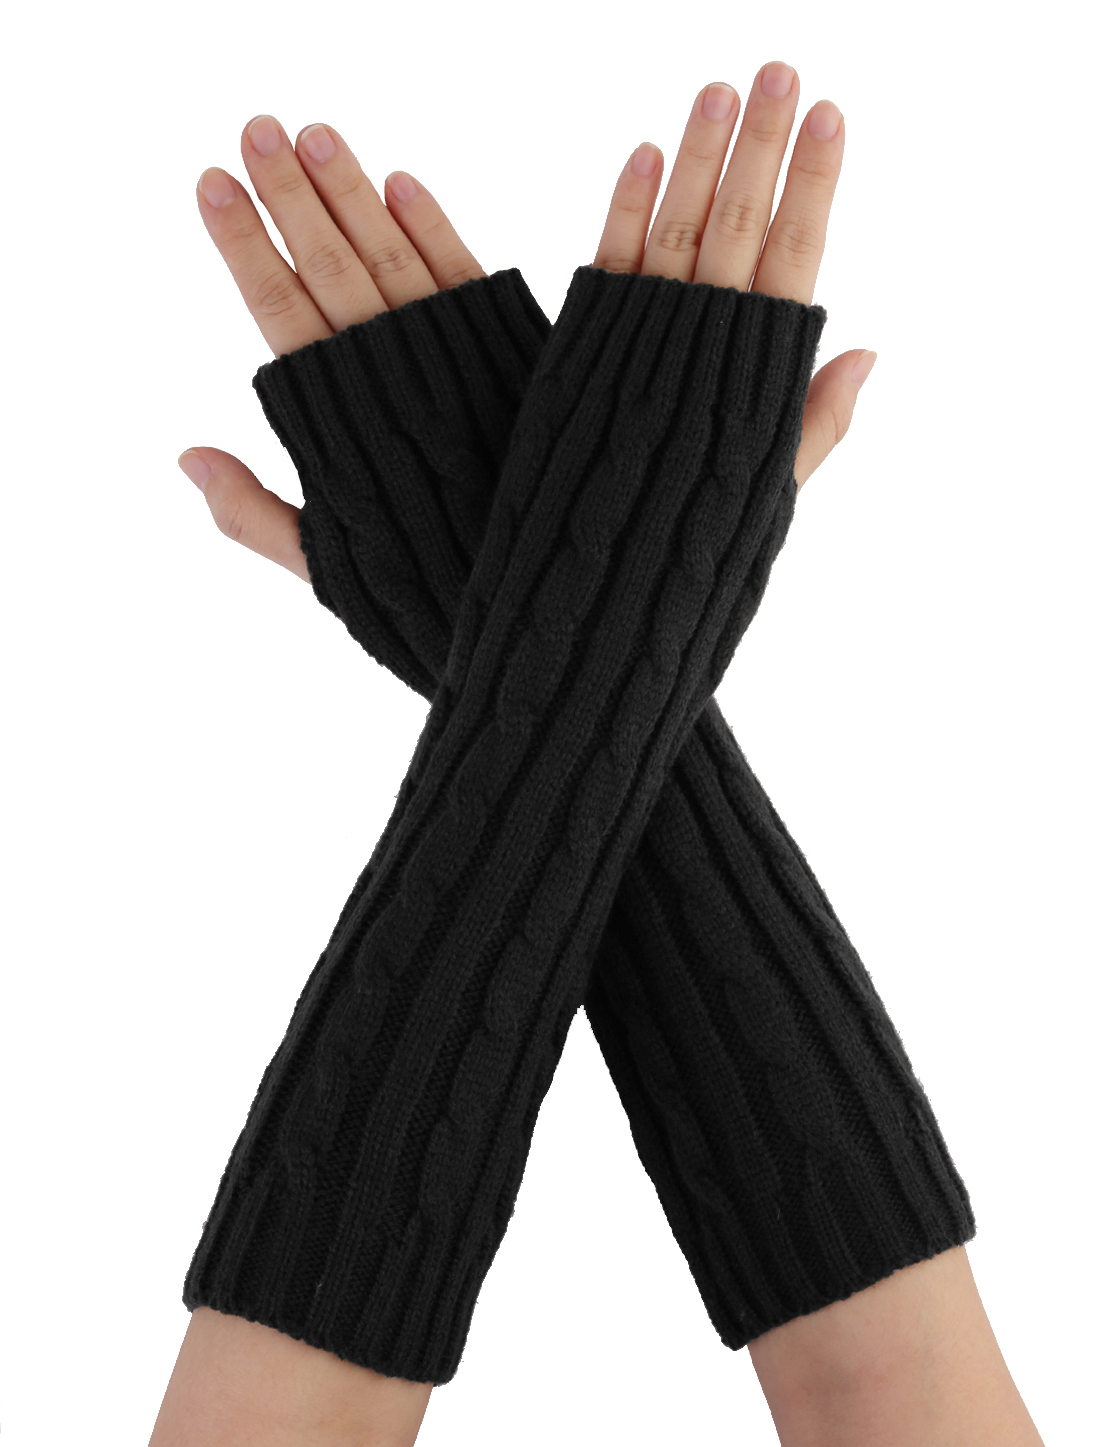 Mens Black Knitted Fingerless Textured Design Warmers Gloves